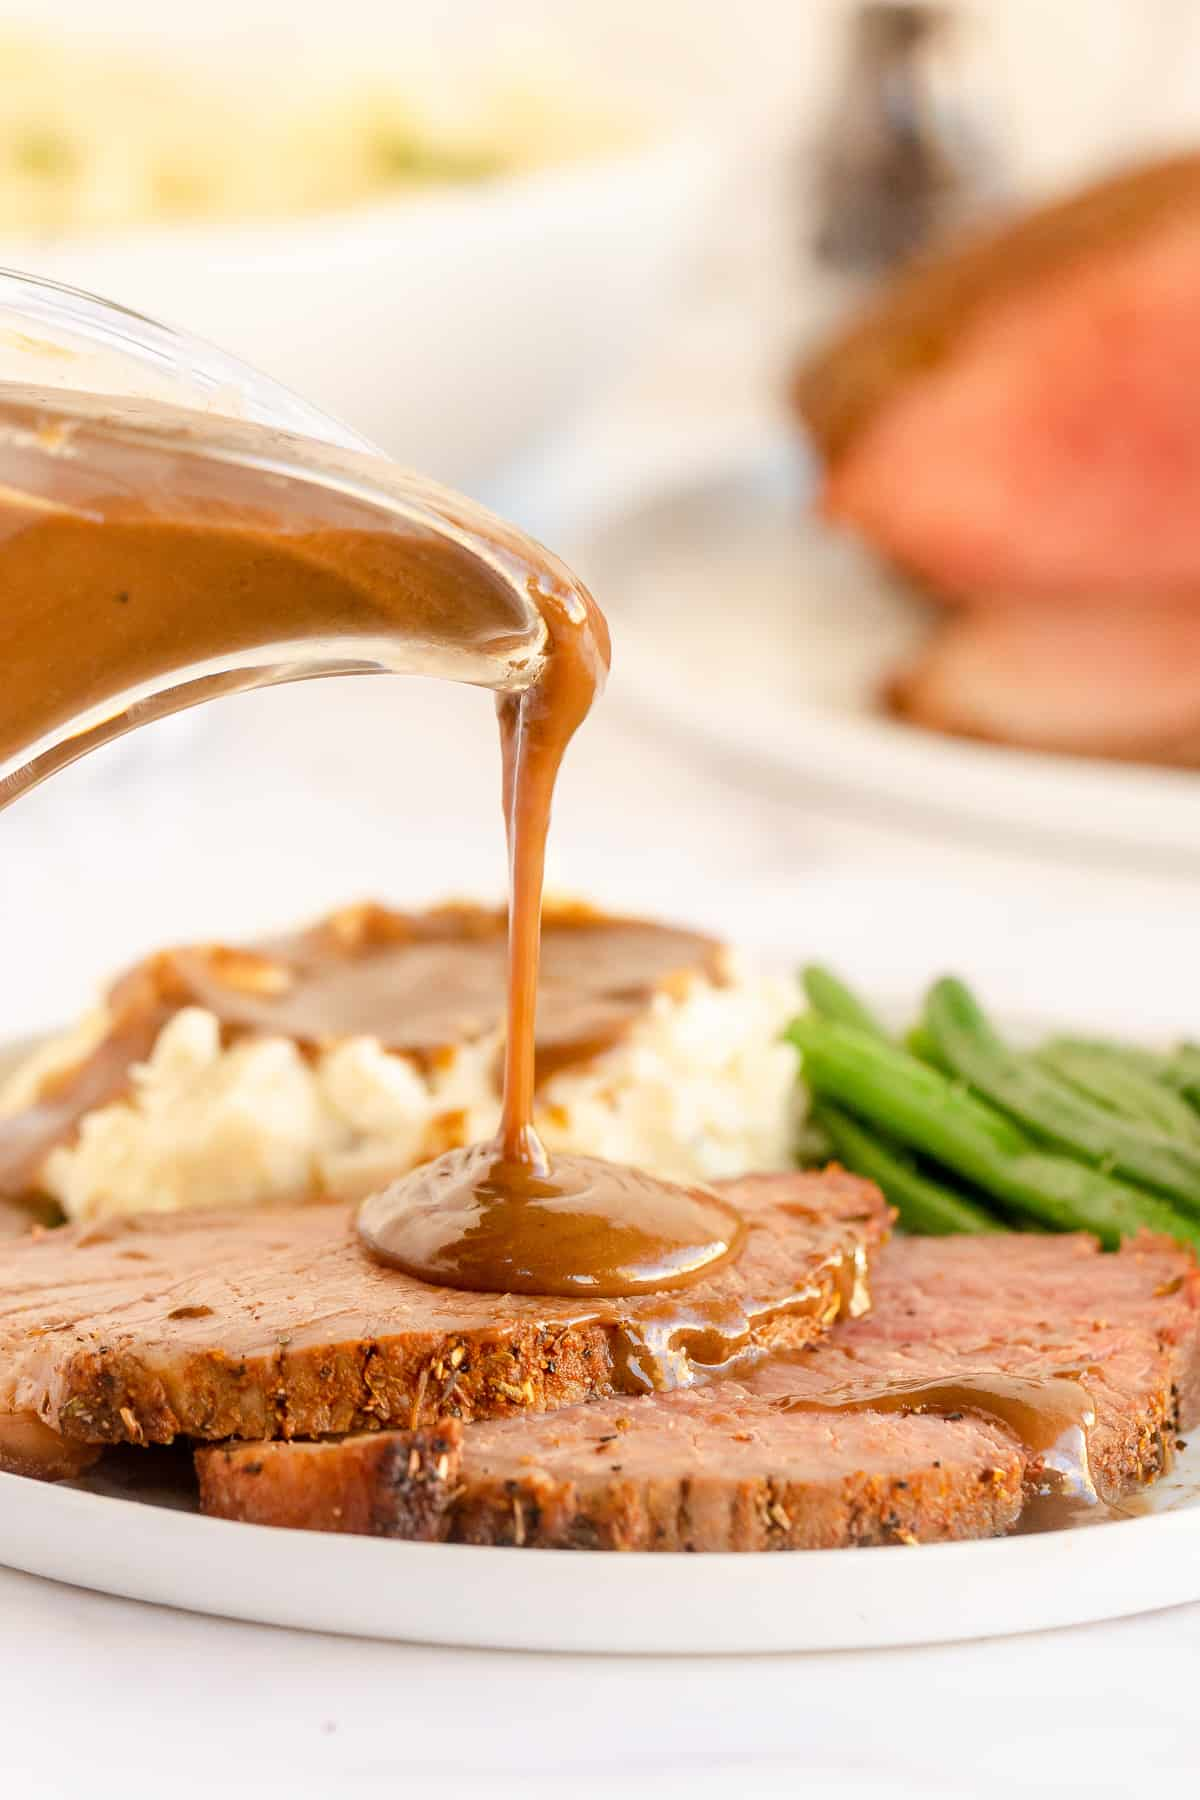 Gravy pouring on to slices of roast beef.